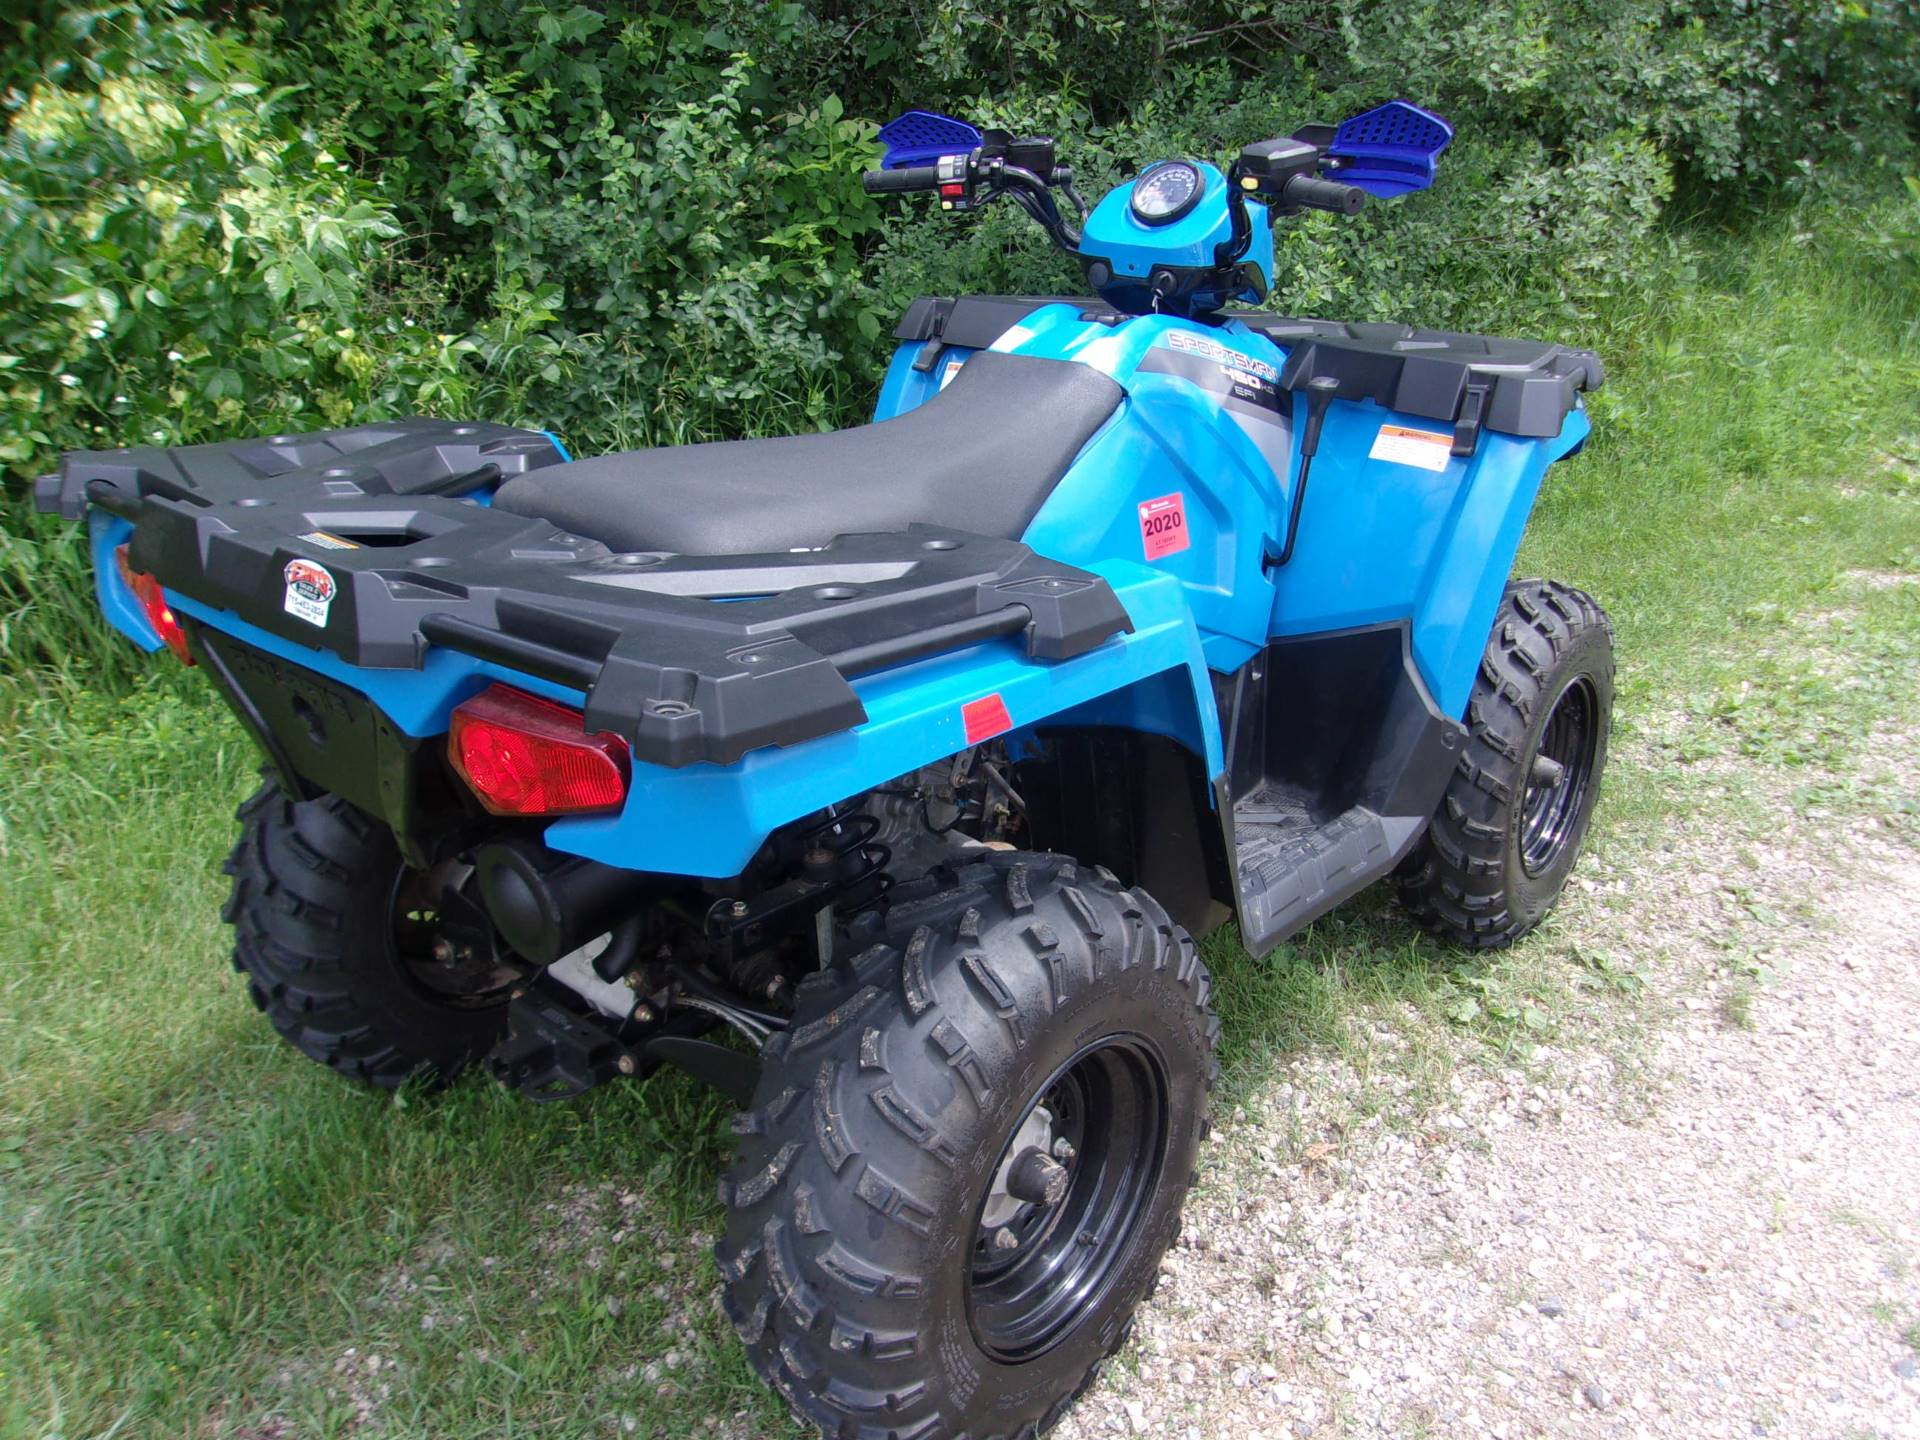 2016 Polaris Sportsman 450 H.O. in Mukwonago, Wisconsin - Photo 3